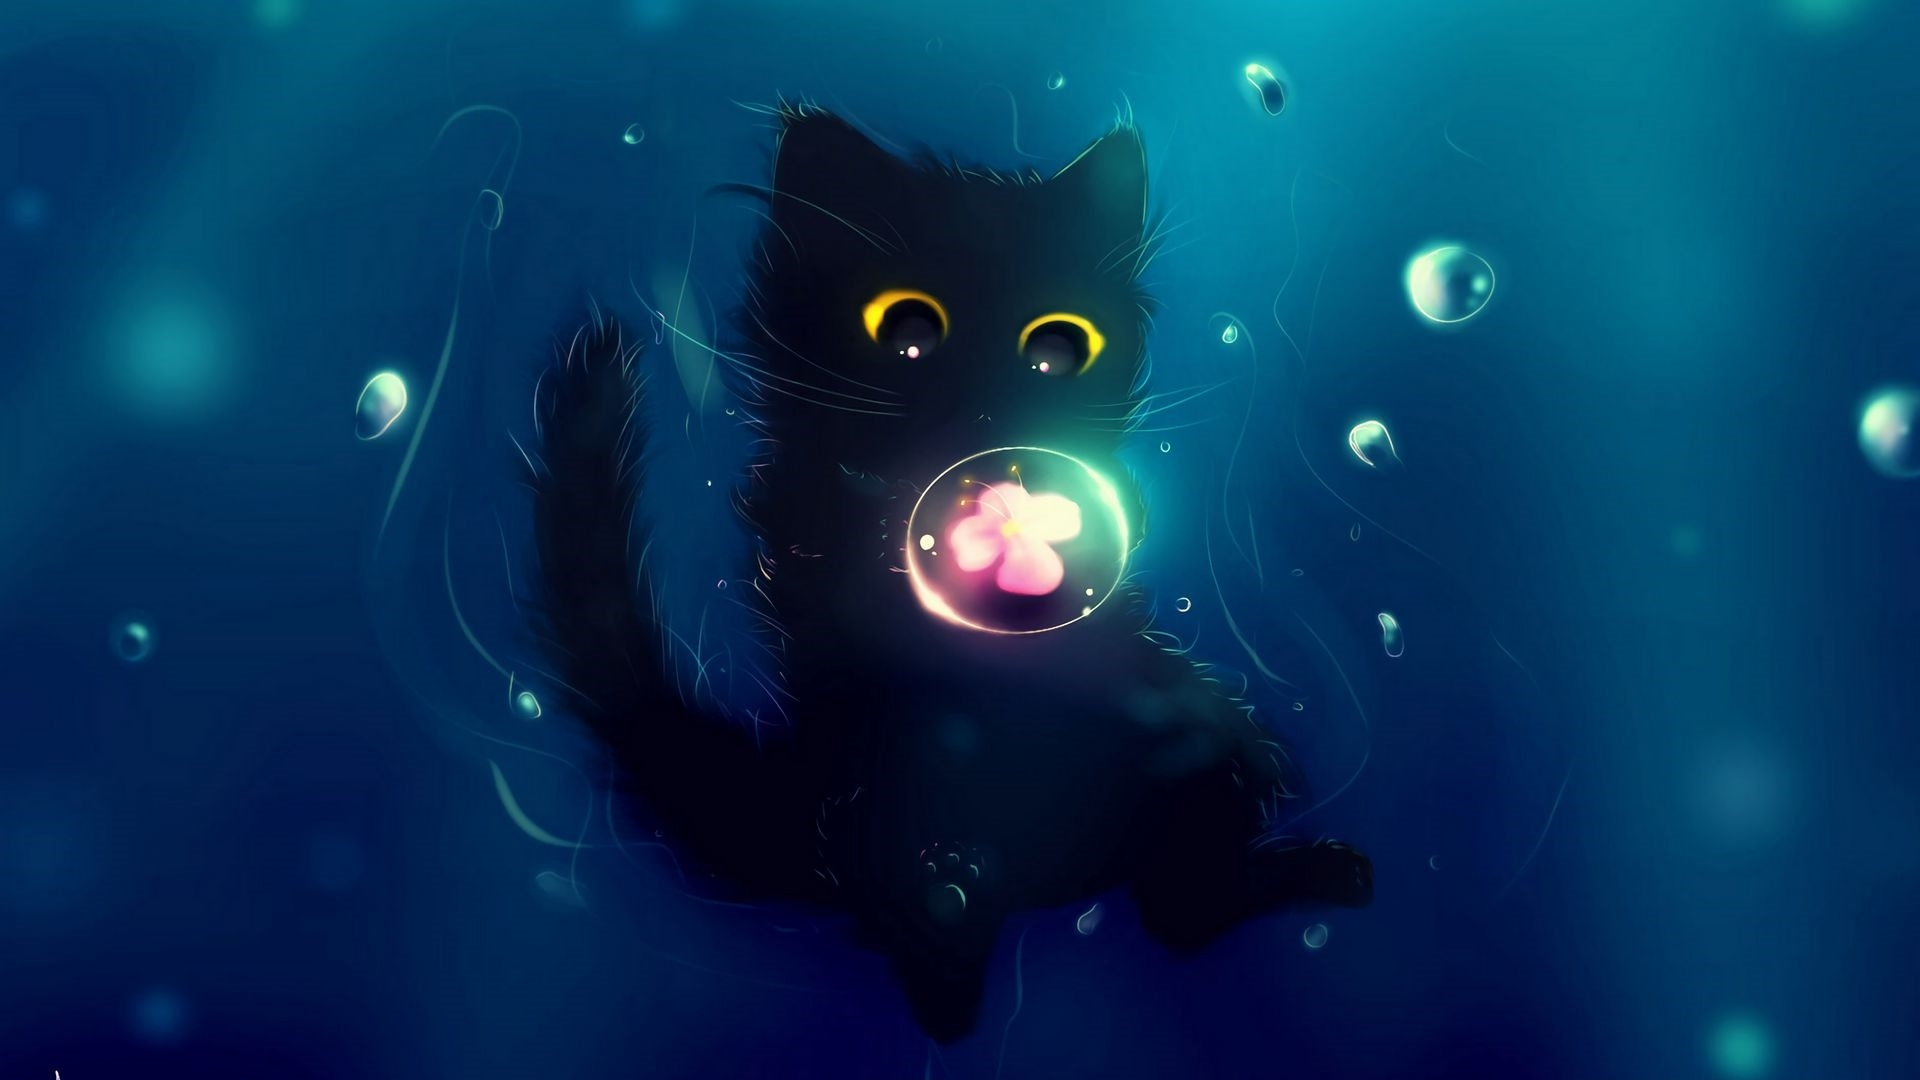 Drawn Cats wallpaper for pc